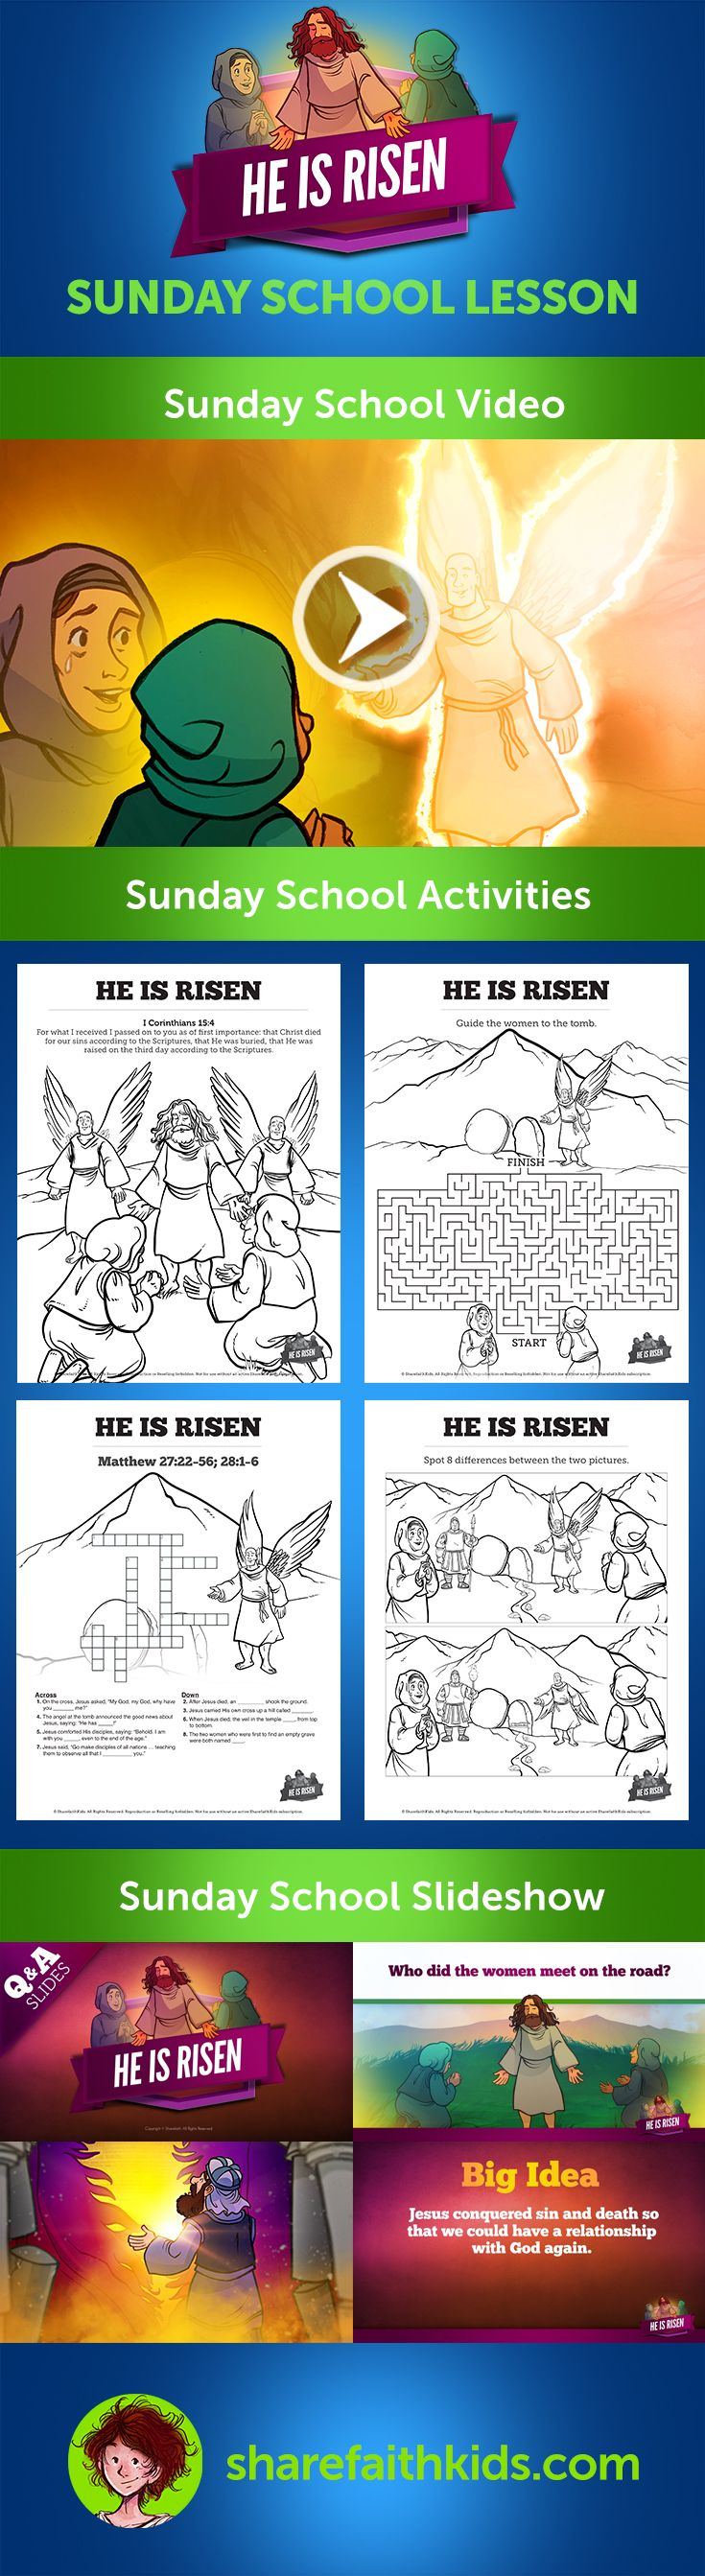 He Is Risen Easter Sunday School Lesson for Kids: This awe-inspiring Matthew 27-28 Sunday School Lesson explores the greatest event in all of history - the bodily resurrection of Jesus Christ. Inside you'll discover a bundle of resources that will empower you to teach this Sunday School lesson with creativity and confidence.